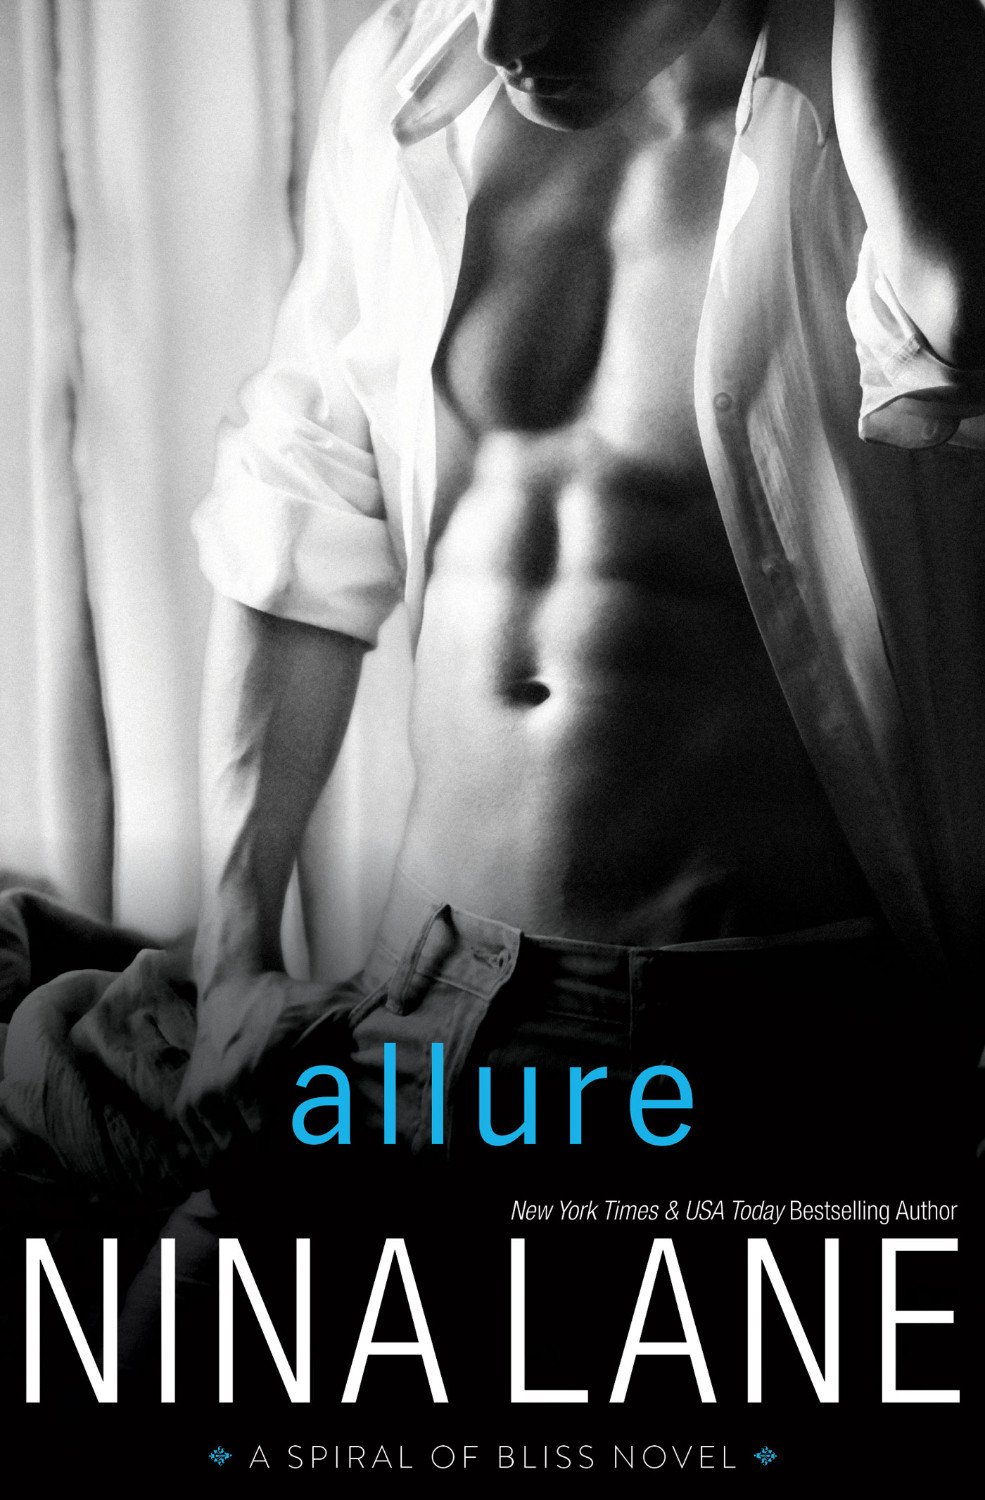 SOB_SexyCover_Allure_1400px_51616_549-111.jpg